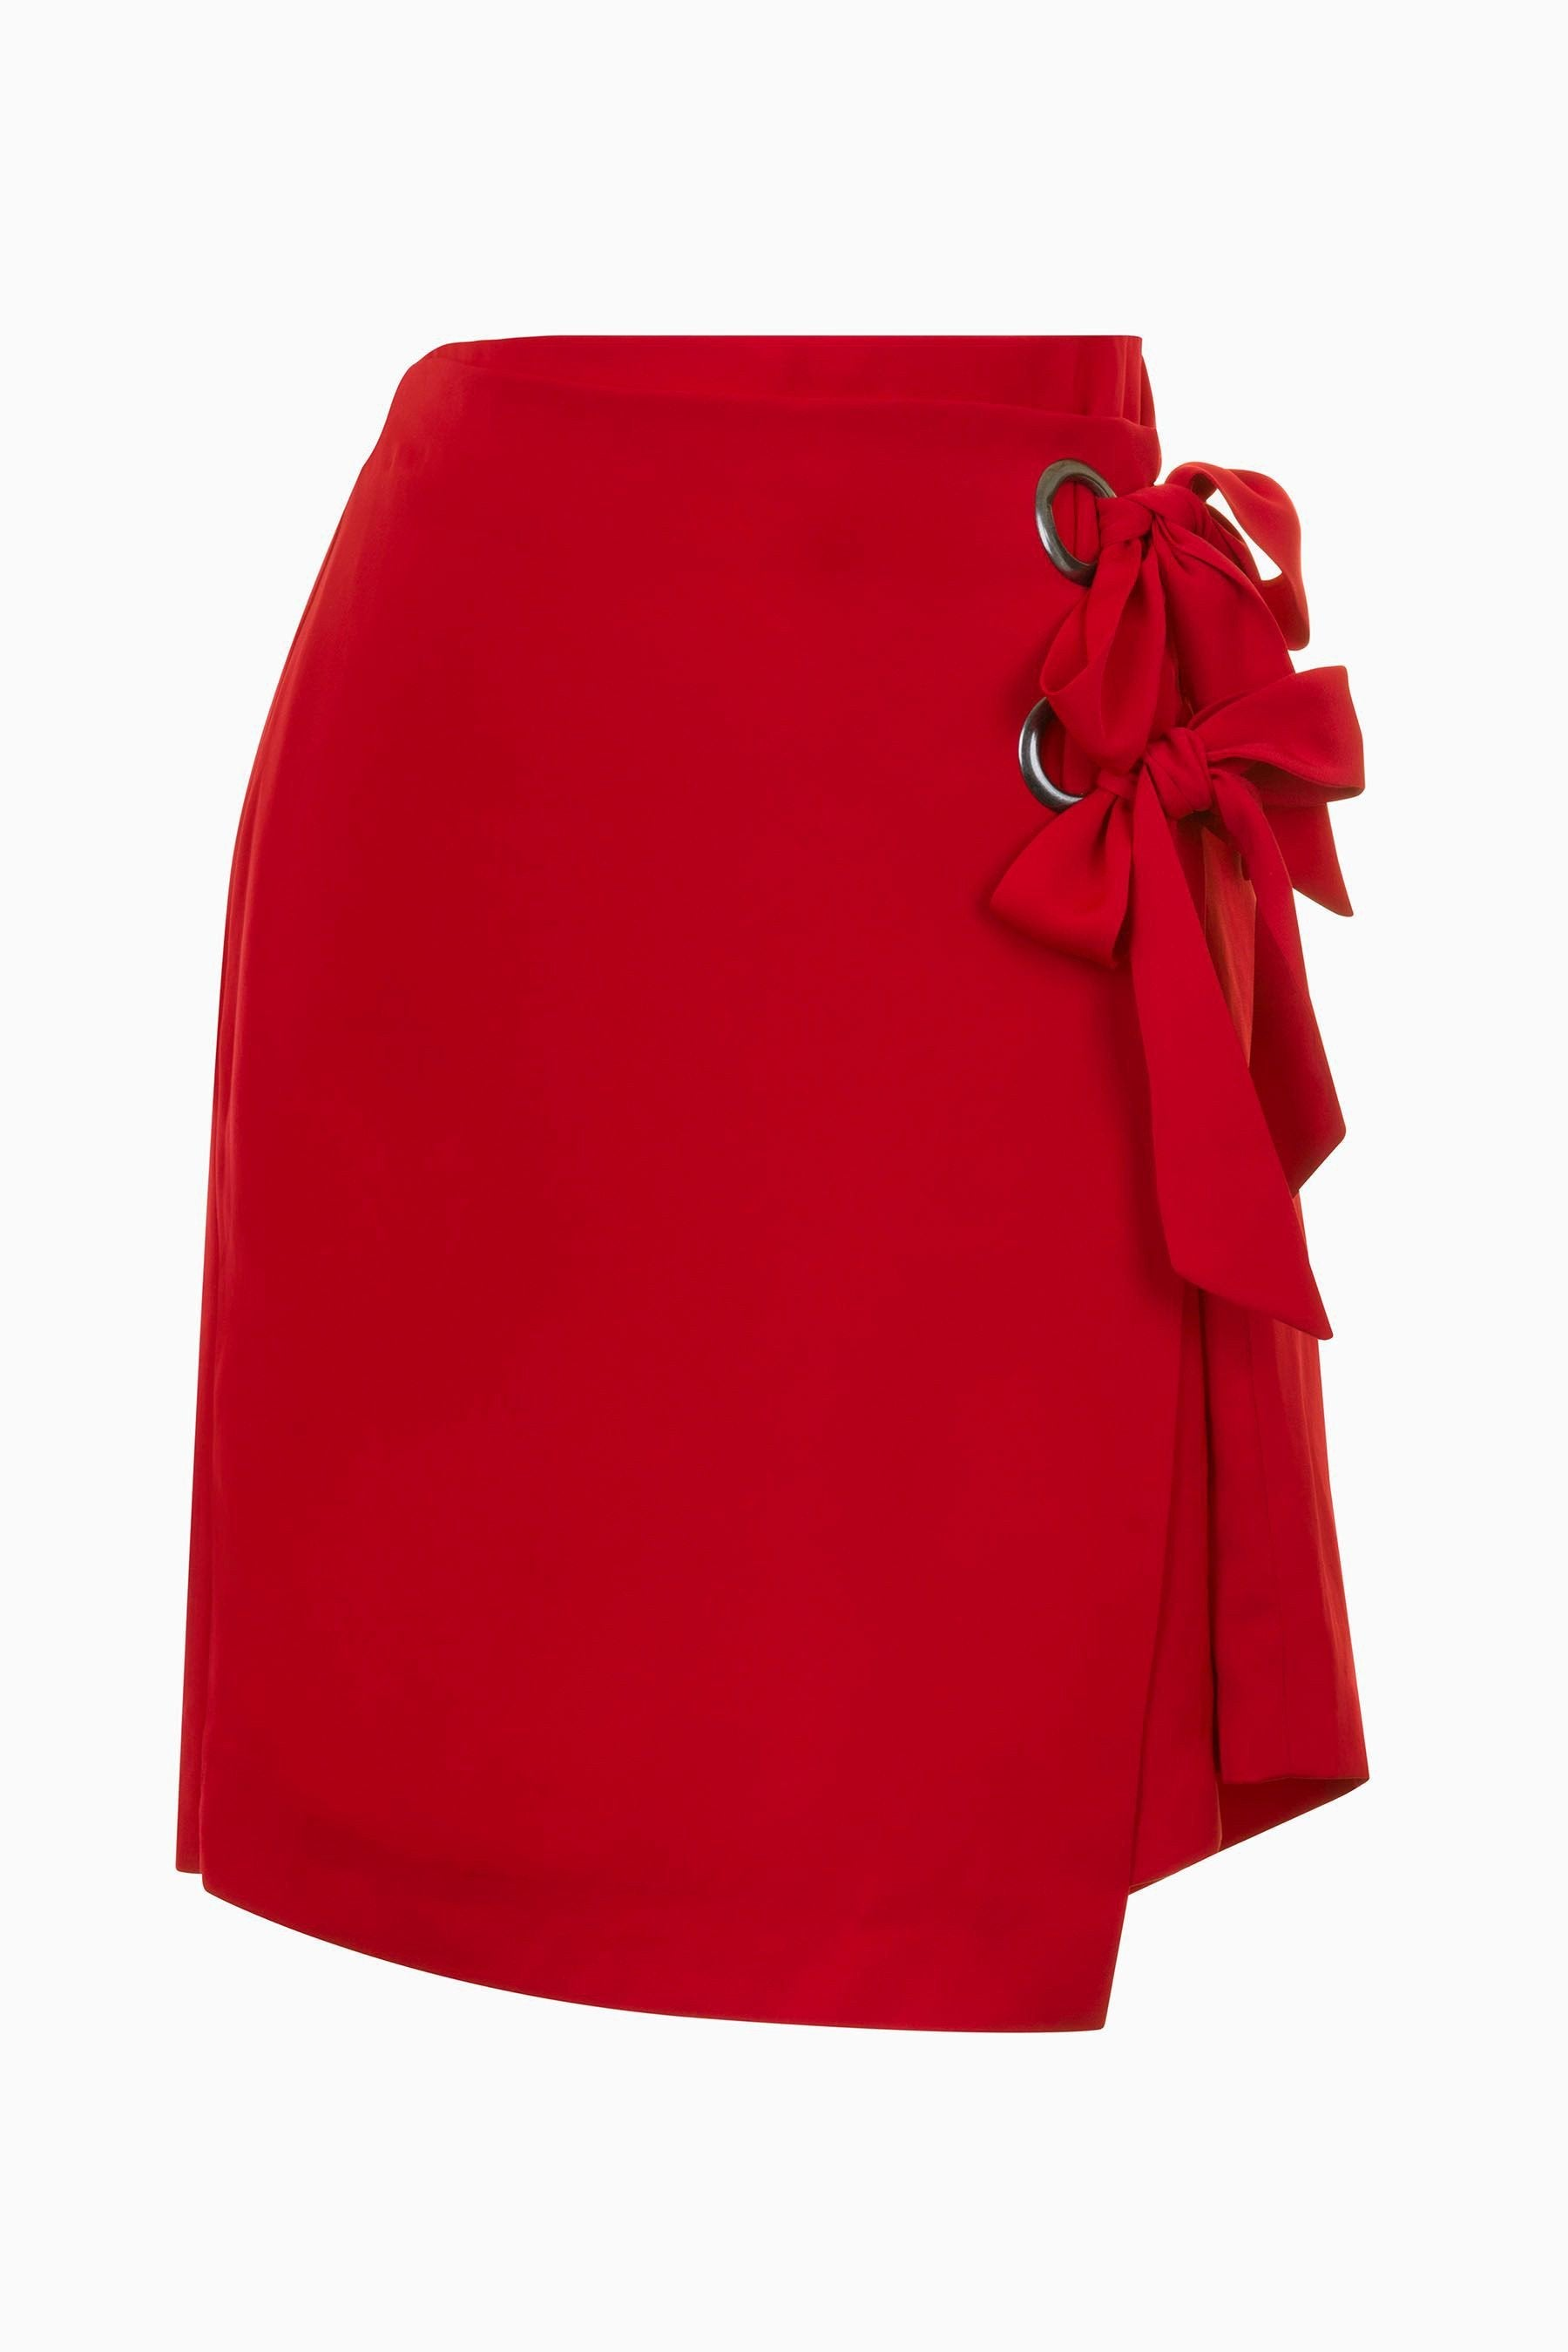 Shop Neon Rose Skirt Neon Rose Red Wrap Eyelet Mini Skirt Second Thread